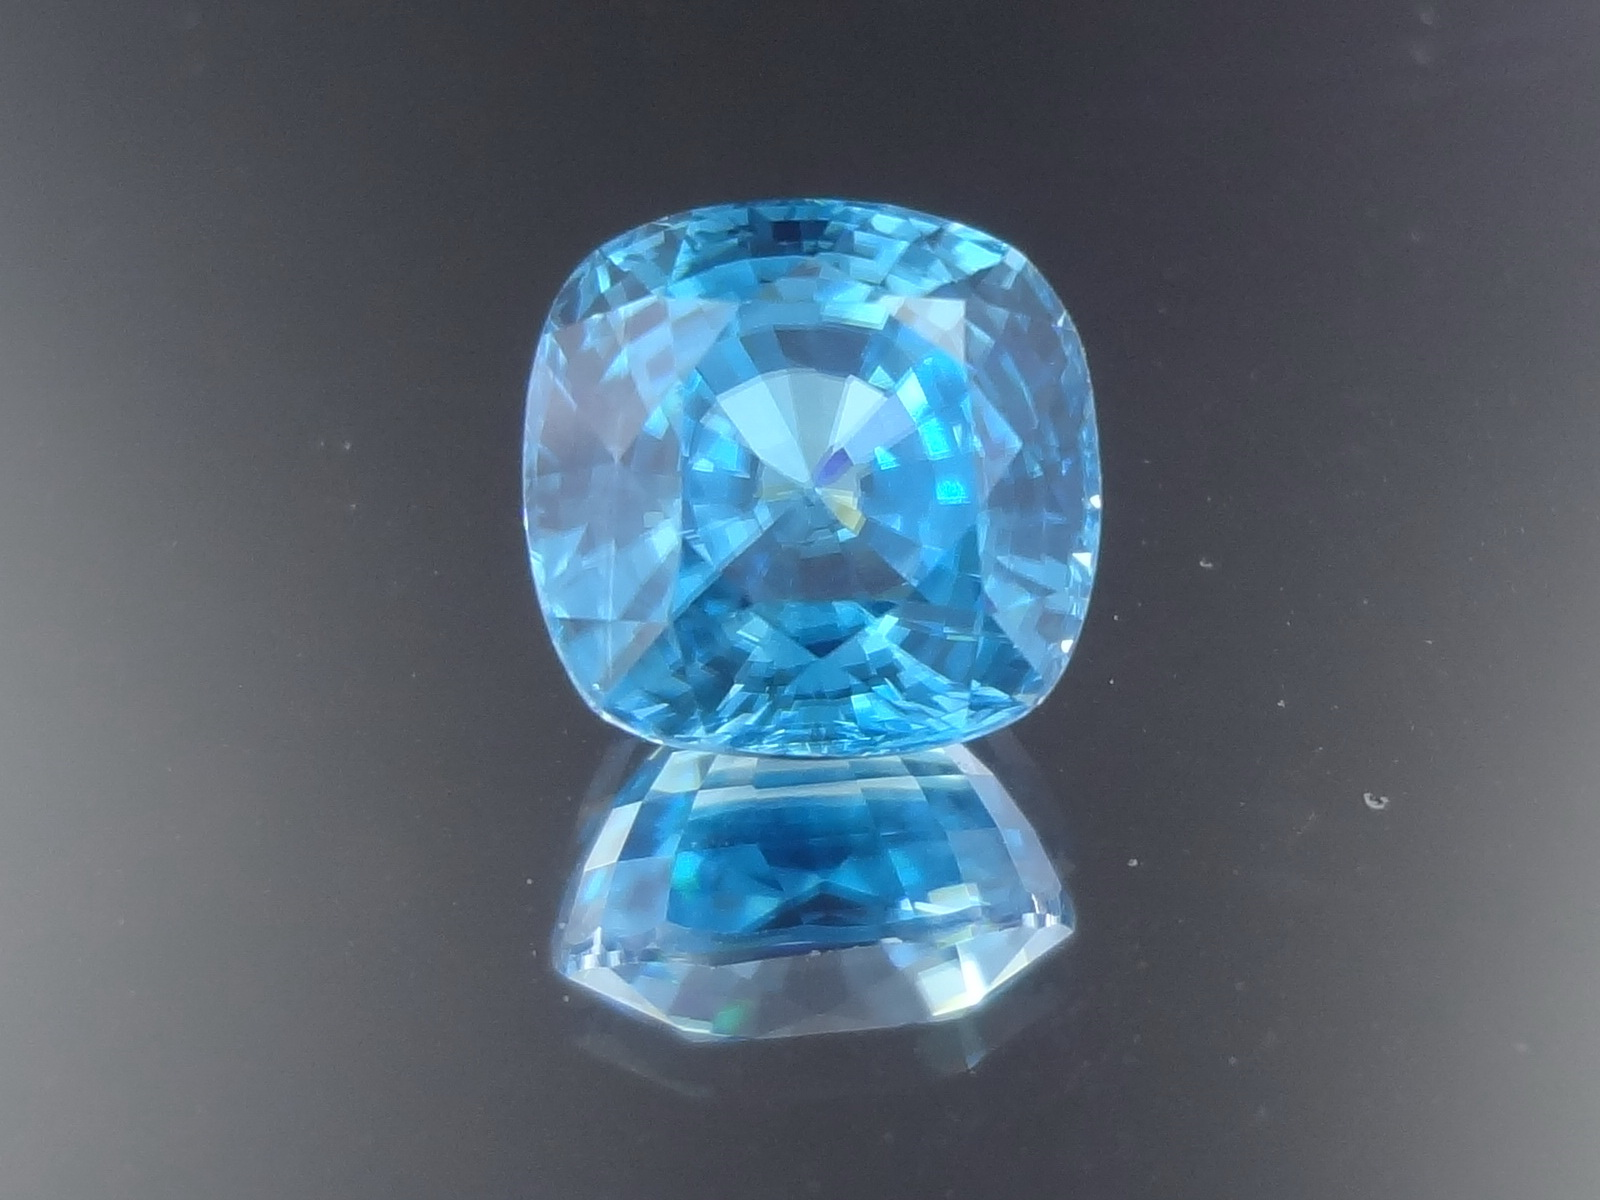 Buy Excellent Cushion Sky Blue Zircon from Cambodia 6.5ct